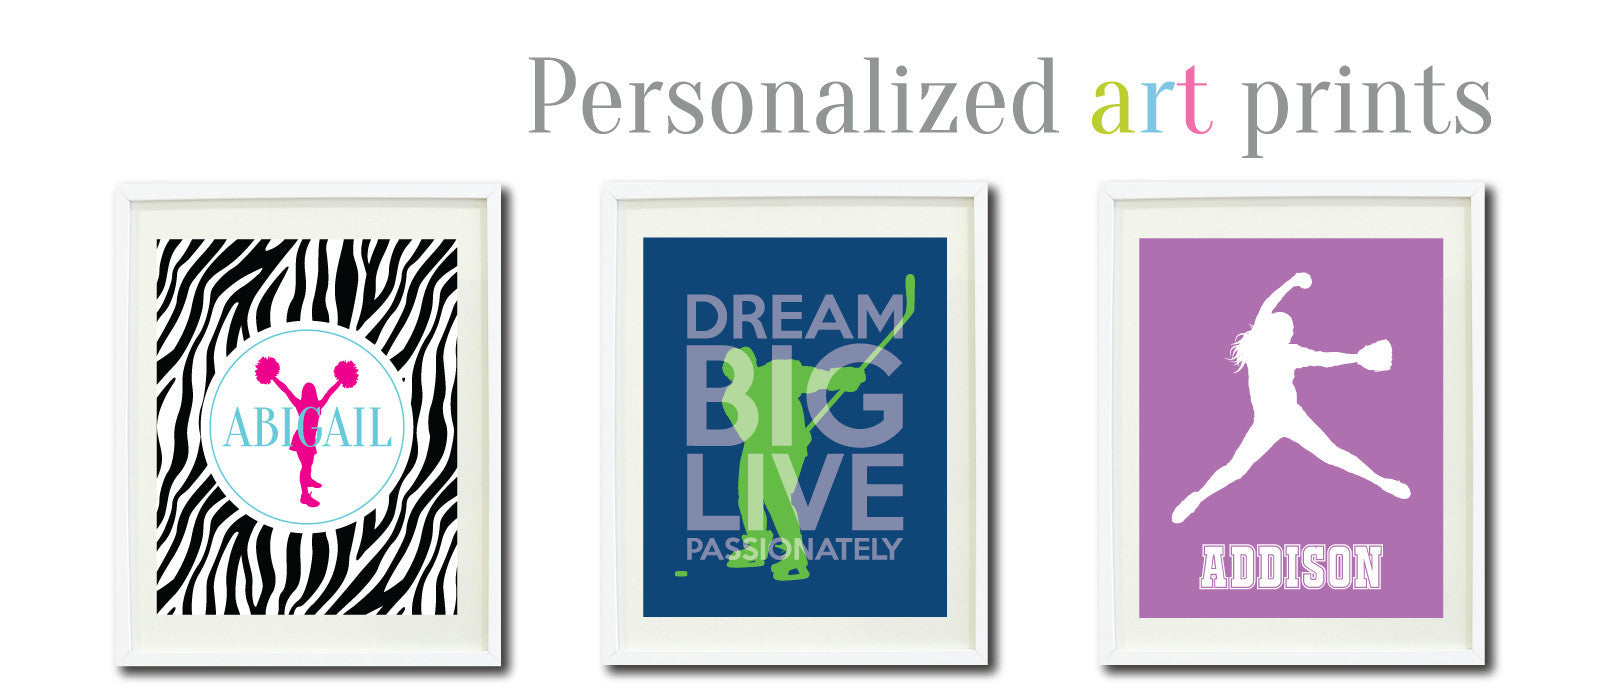 Personalized art prints